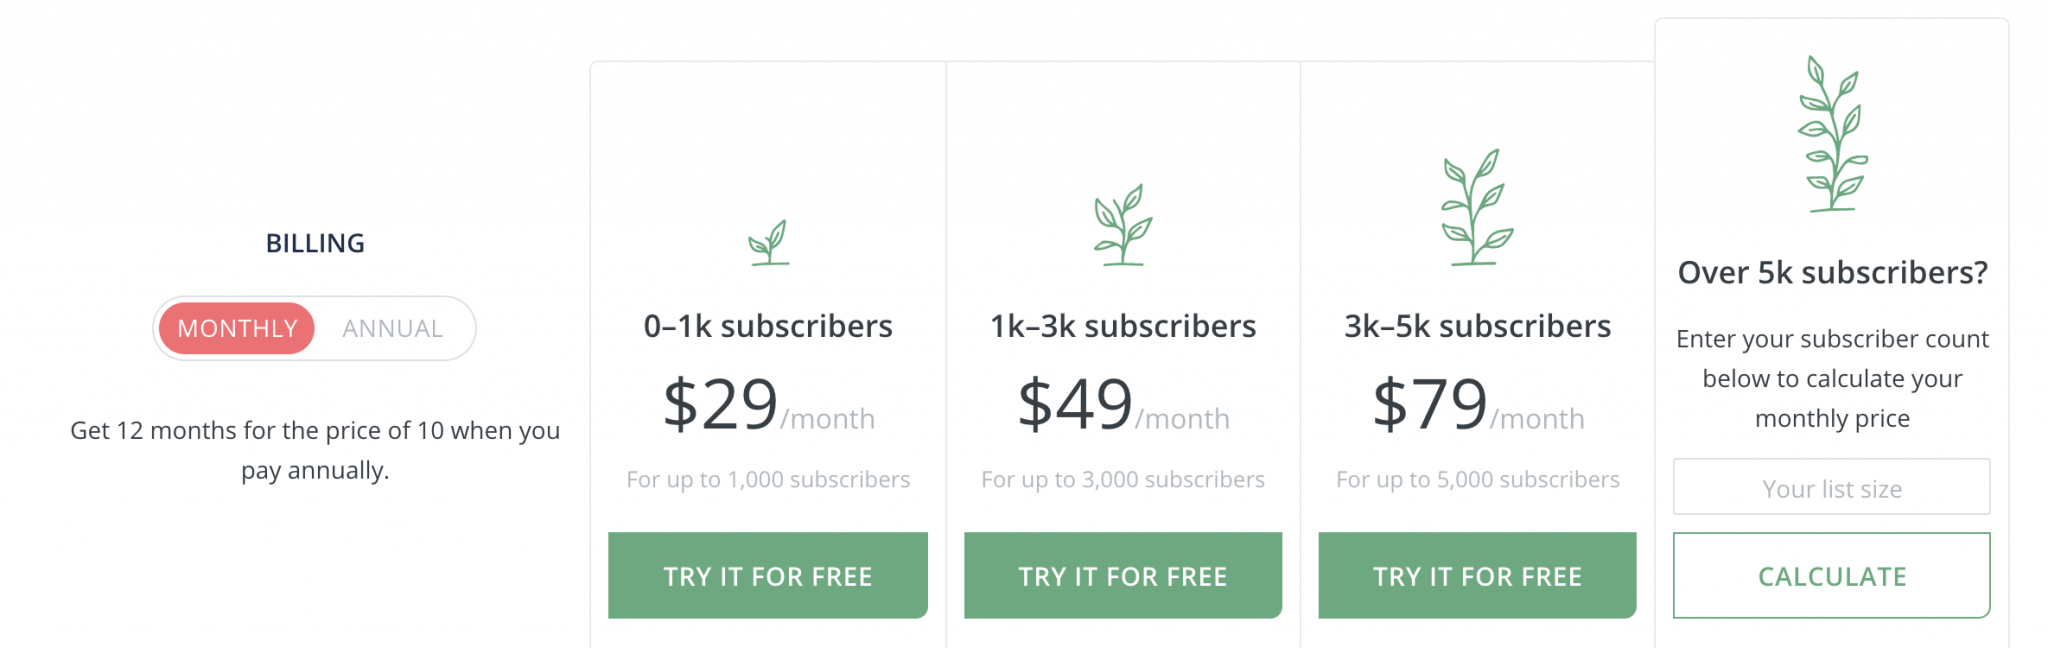 Promo Code Upgrade Fee Email Marketing Convertkit 2020